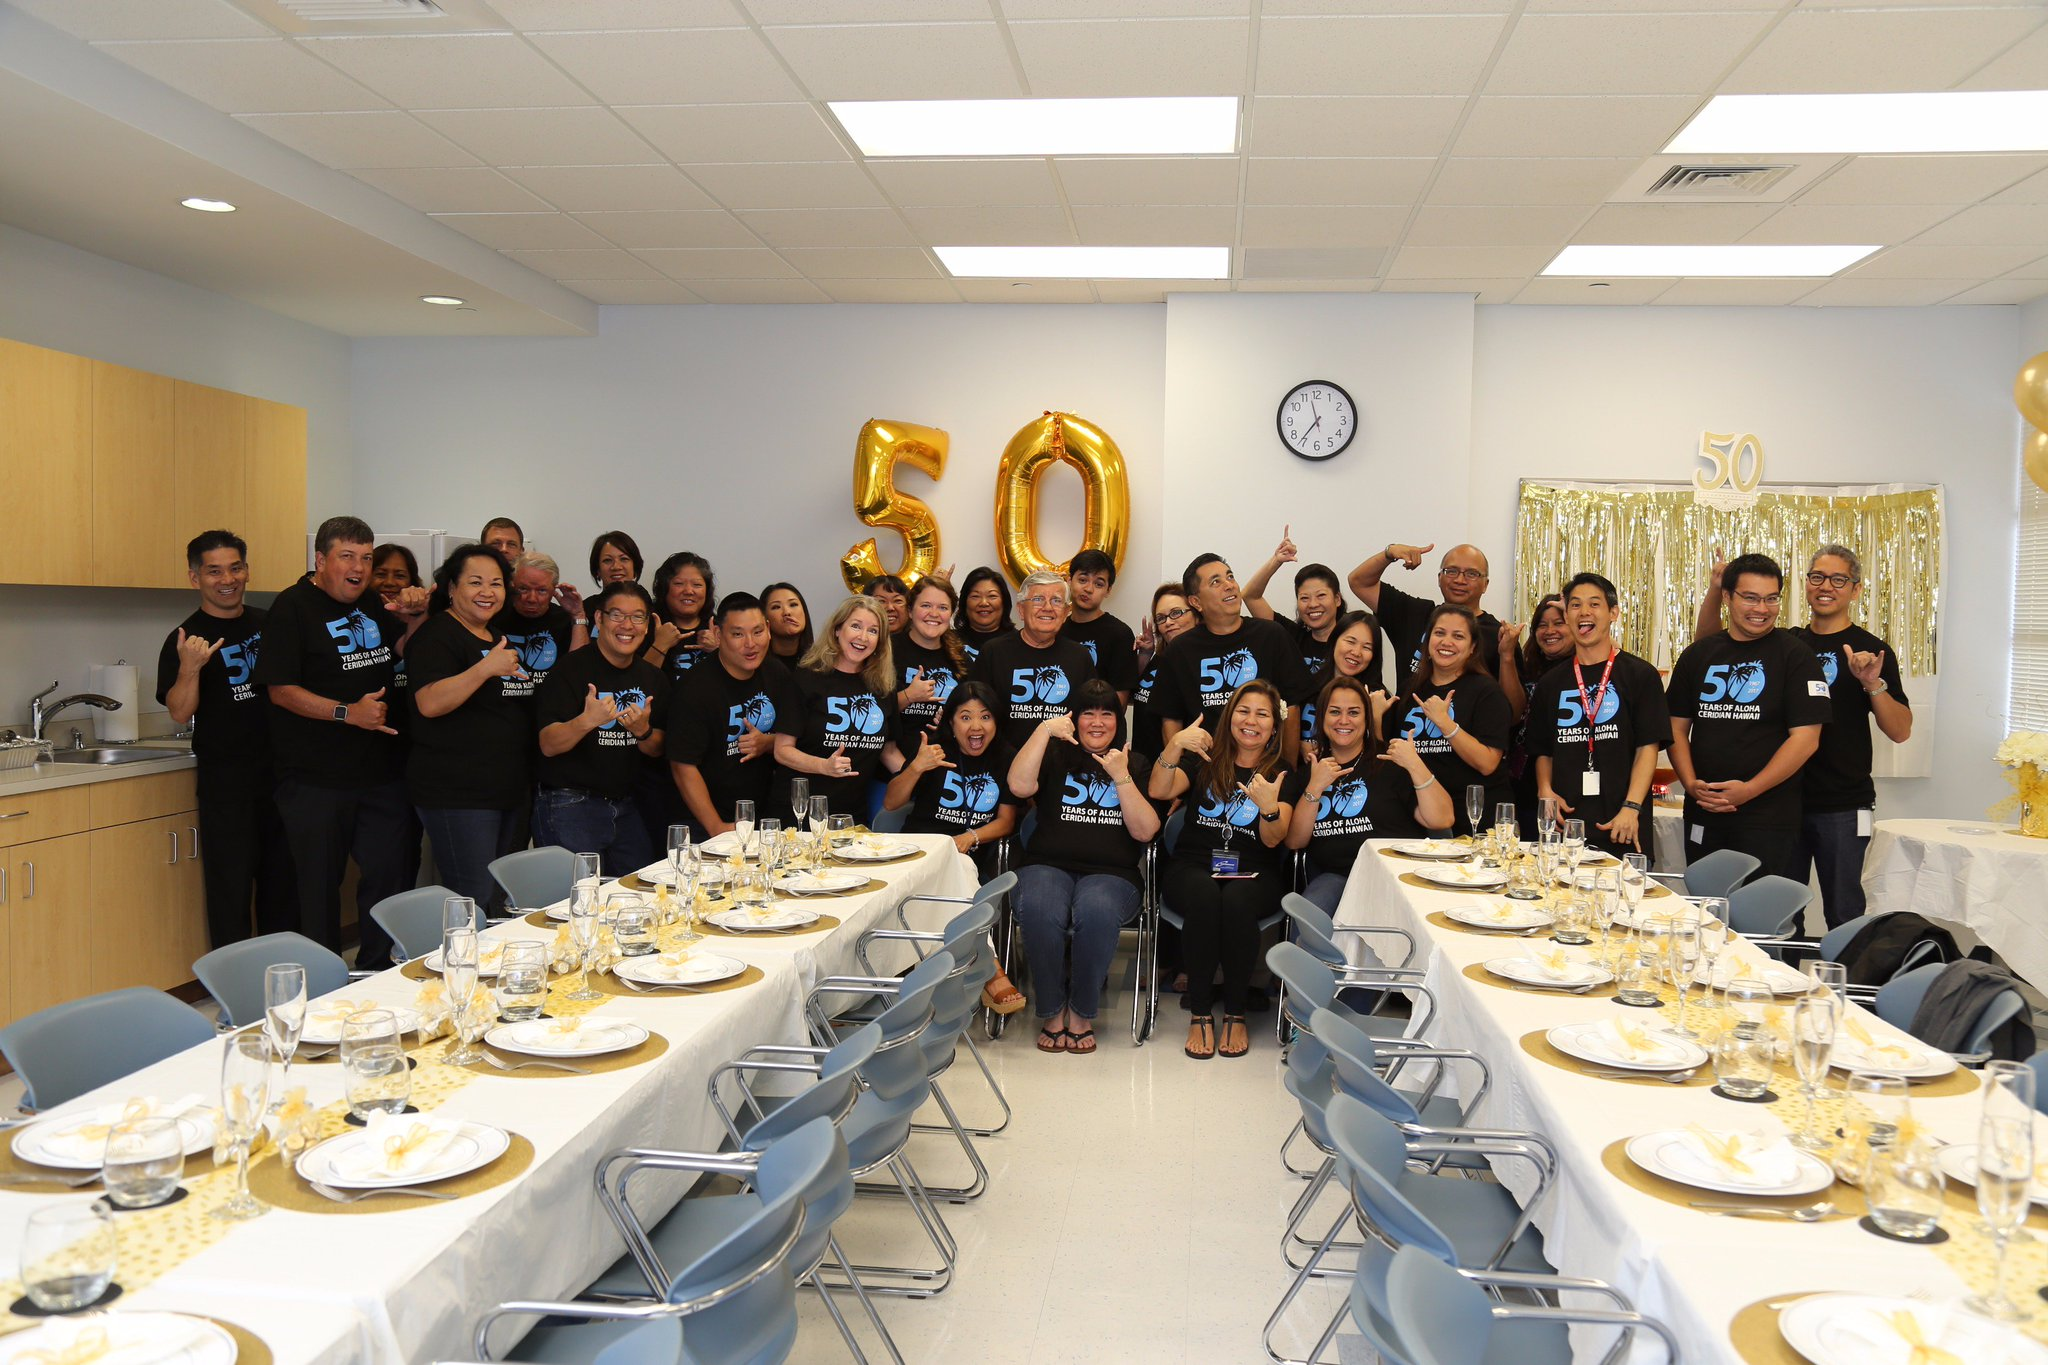 Ceridian Hawaii 'ohana celebrating our 50th anniversary! Here's to 50 more! #ceridianhawaii50 https://t.co/DAUGlBjuHF